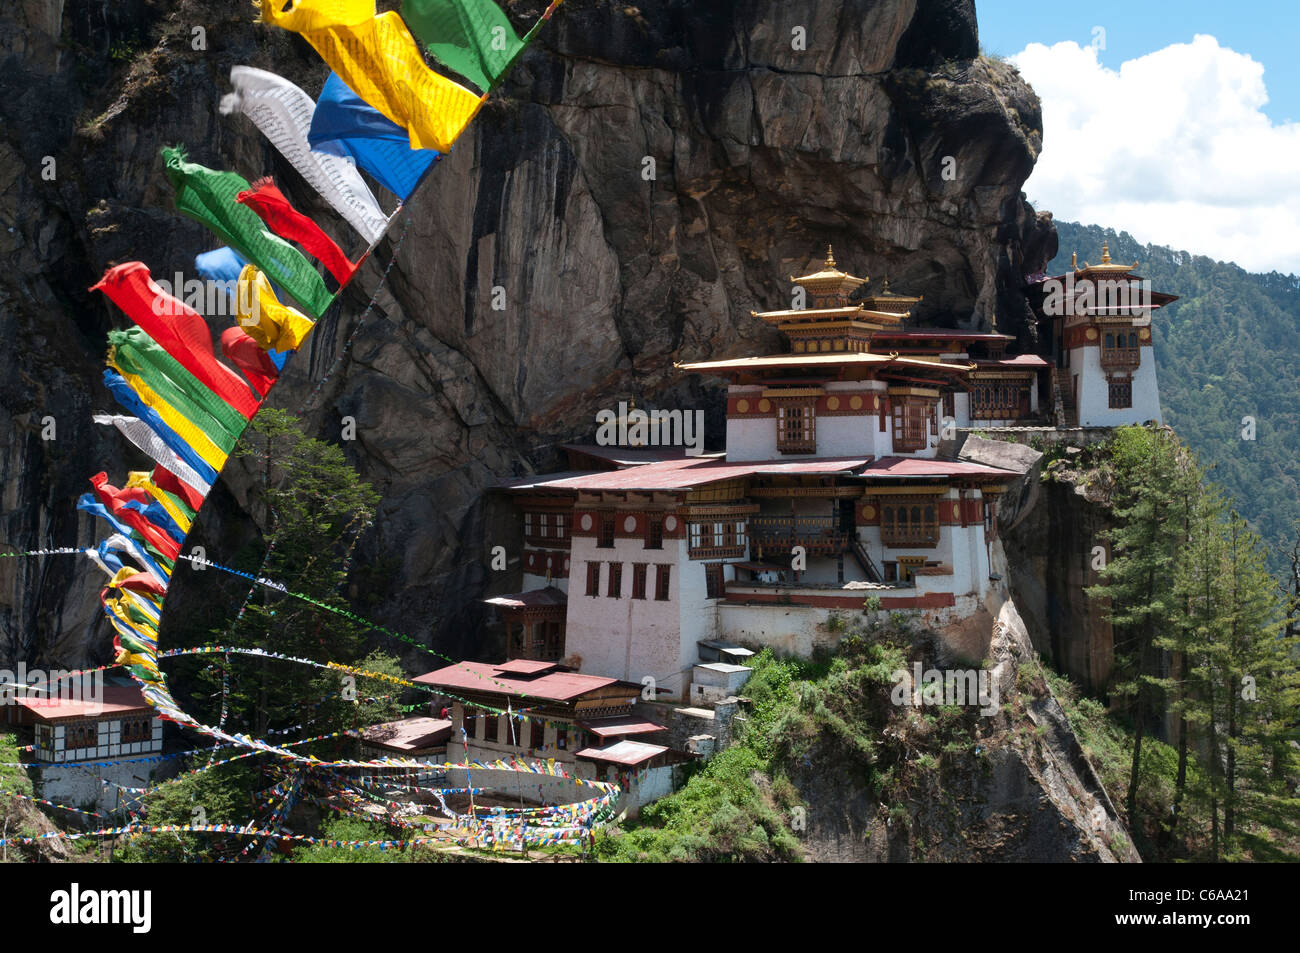 Taktshang Goemba. Tigers nest monastery. view with prayer flags and cliff. Paro valley, bhutan - Stock Image